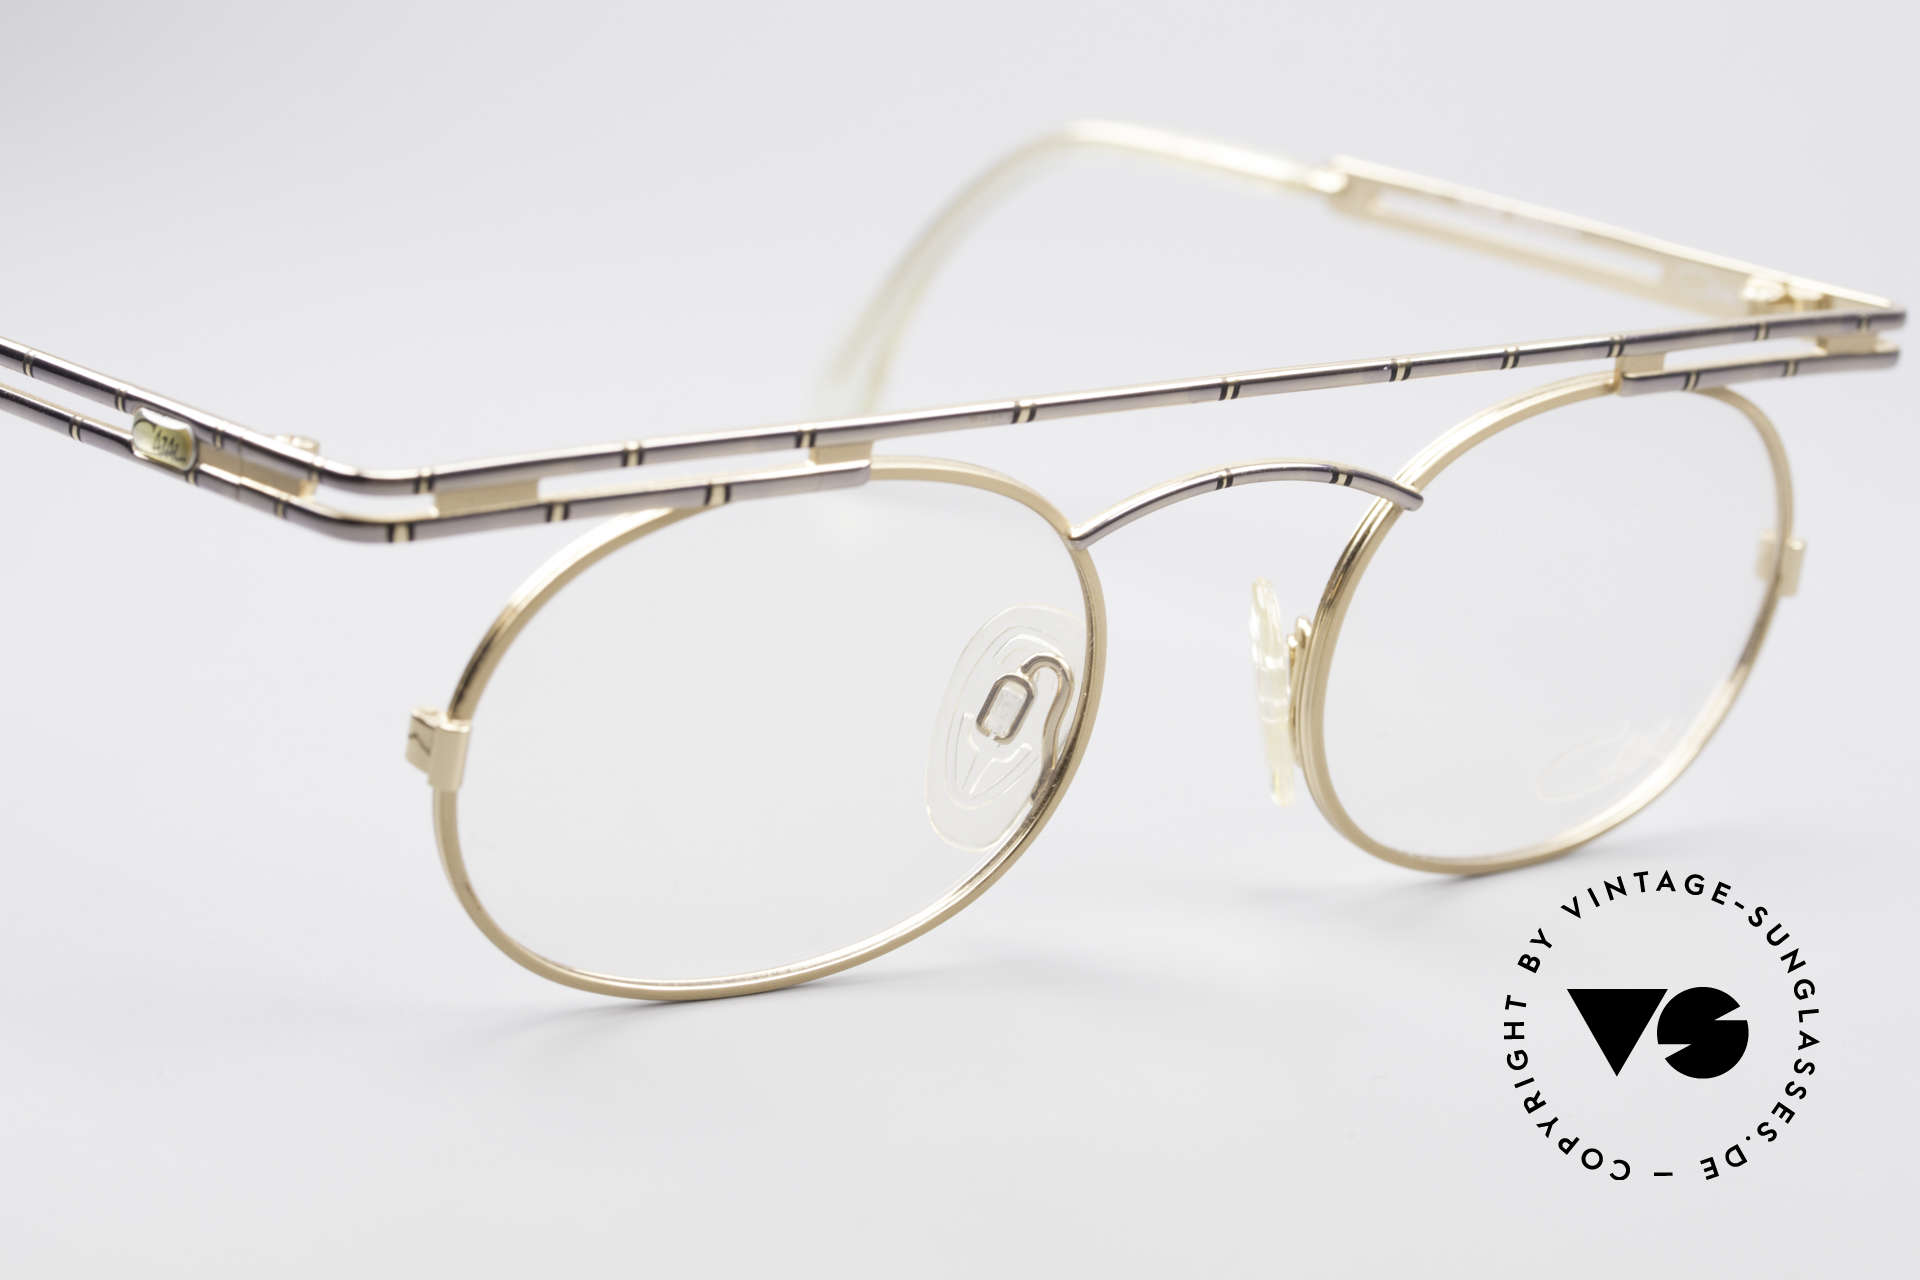 Cazal 761 NO Retro Glasses True Vintage, NO RETRO GLASSES, but true VINTAGE eyeglasses!, Made for Men and Women